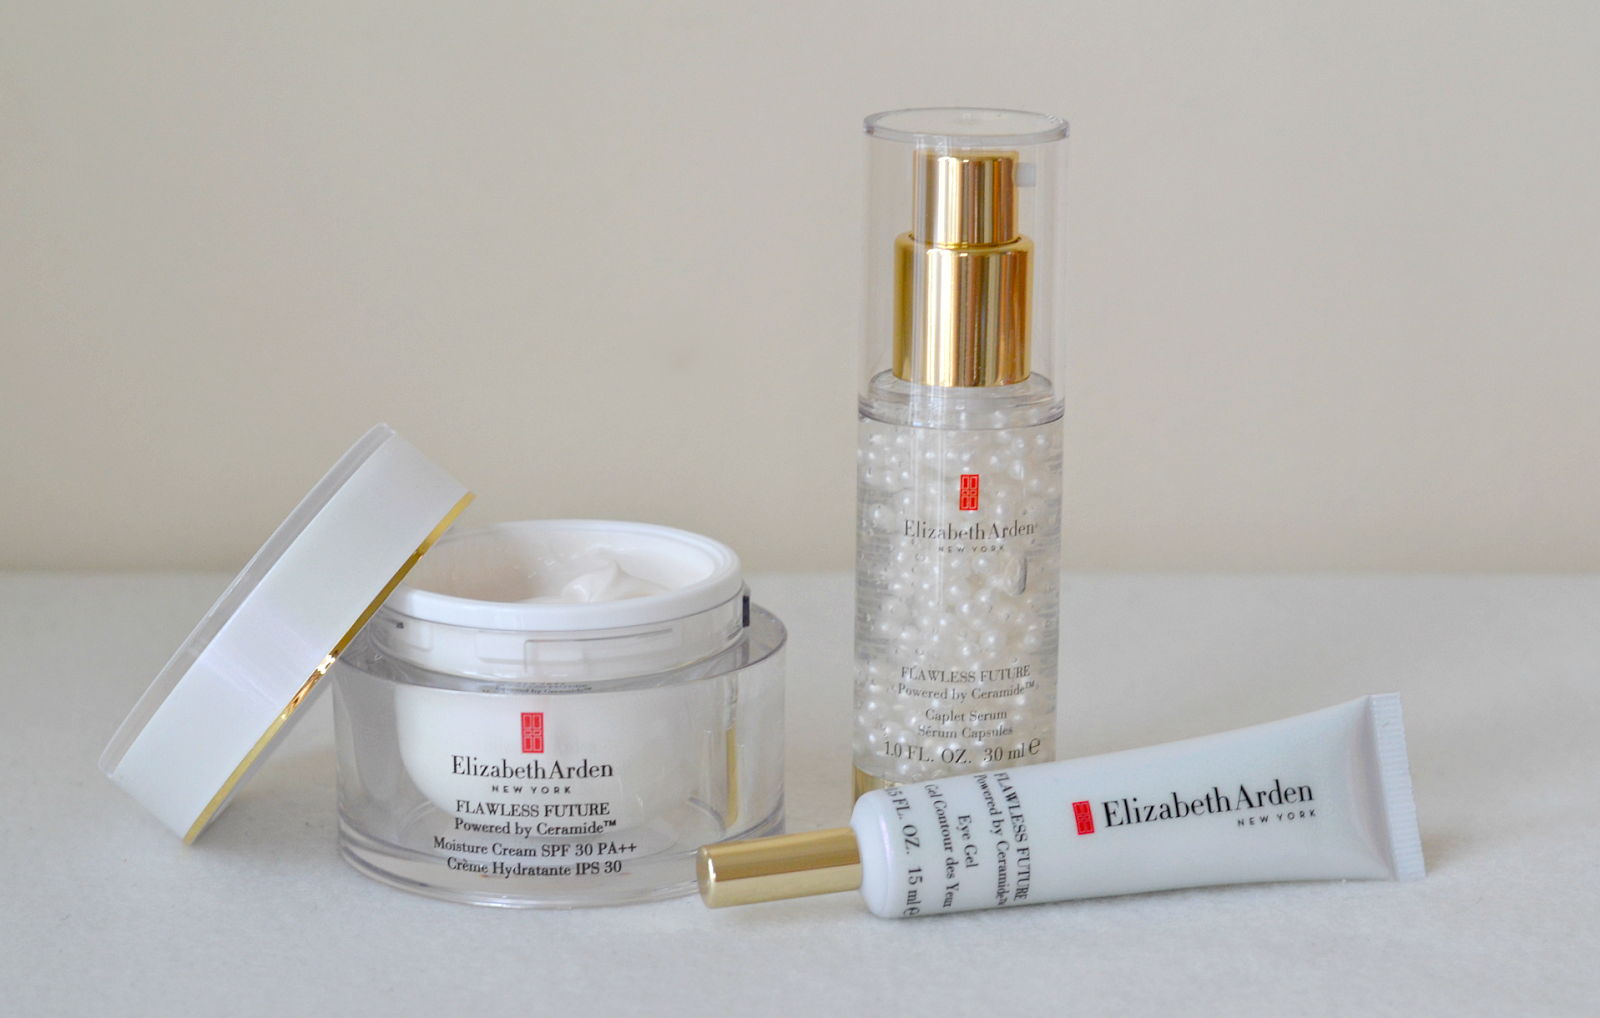 elizabeth-arden-flawless-future-ceramid-moisture-cream-complex-serum-eye-gel-1